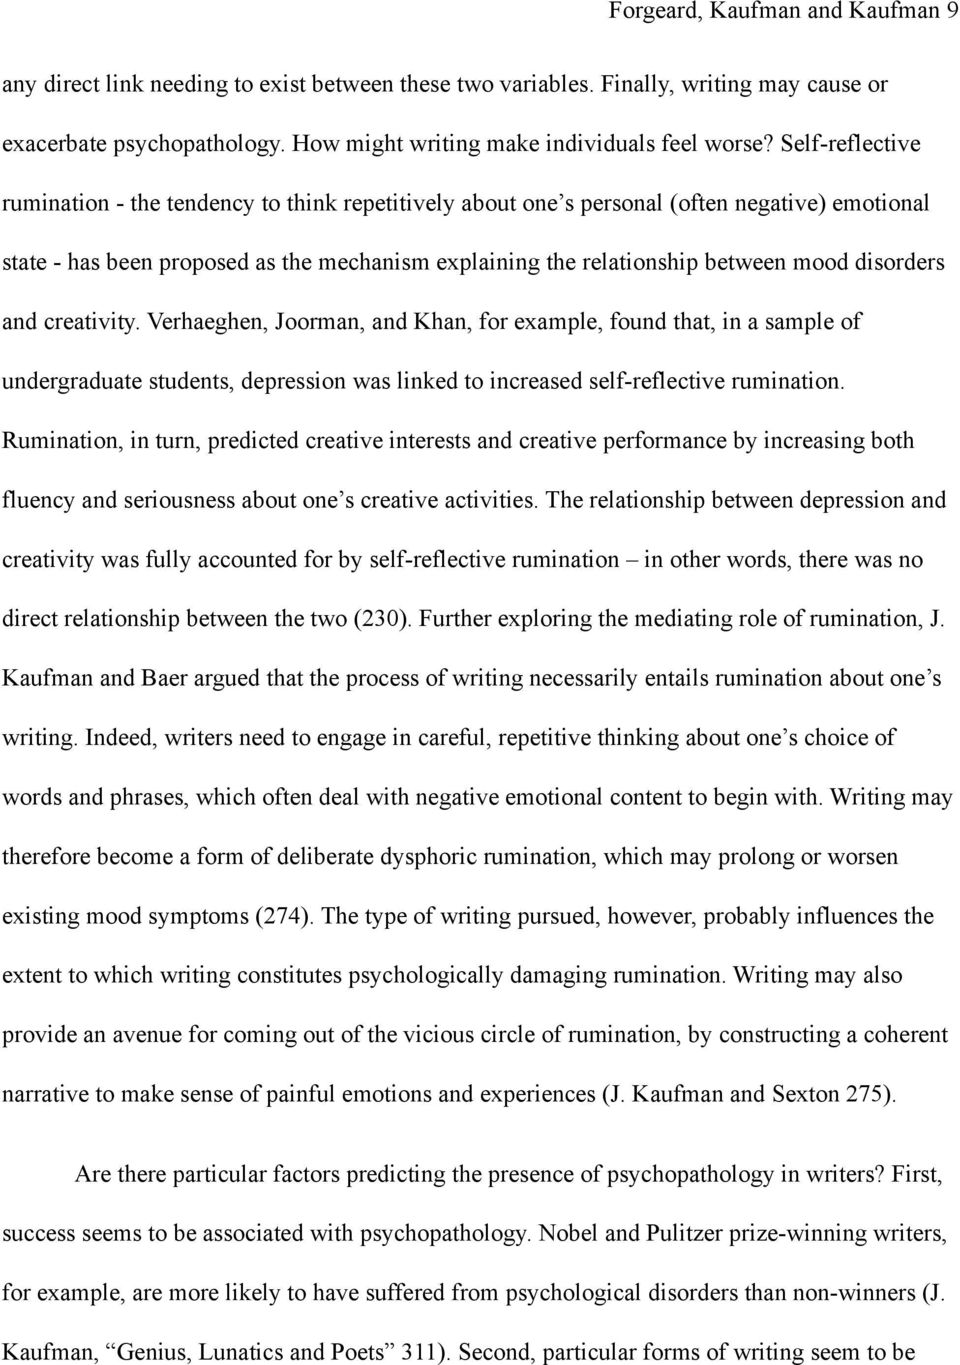 disorders and creativity. Verhaeghen, Joorman, and Khan, for example, found that, in a sample of undergraduate students, depression was linked to increased self-reflective rumination.